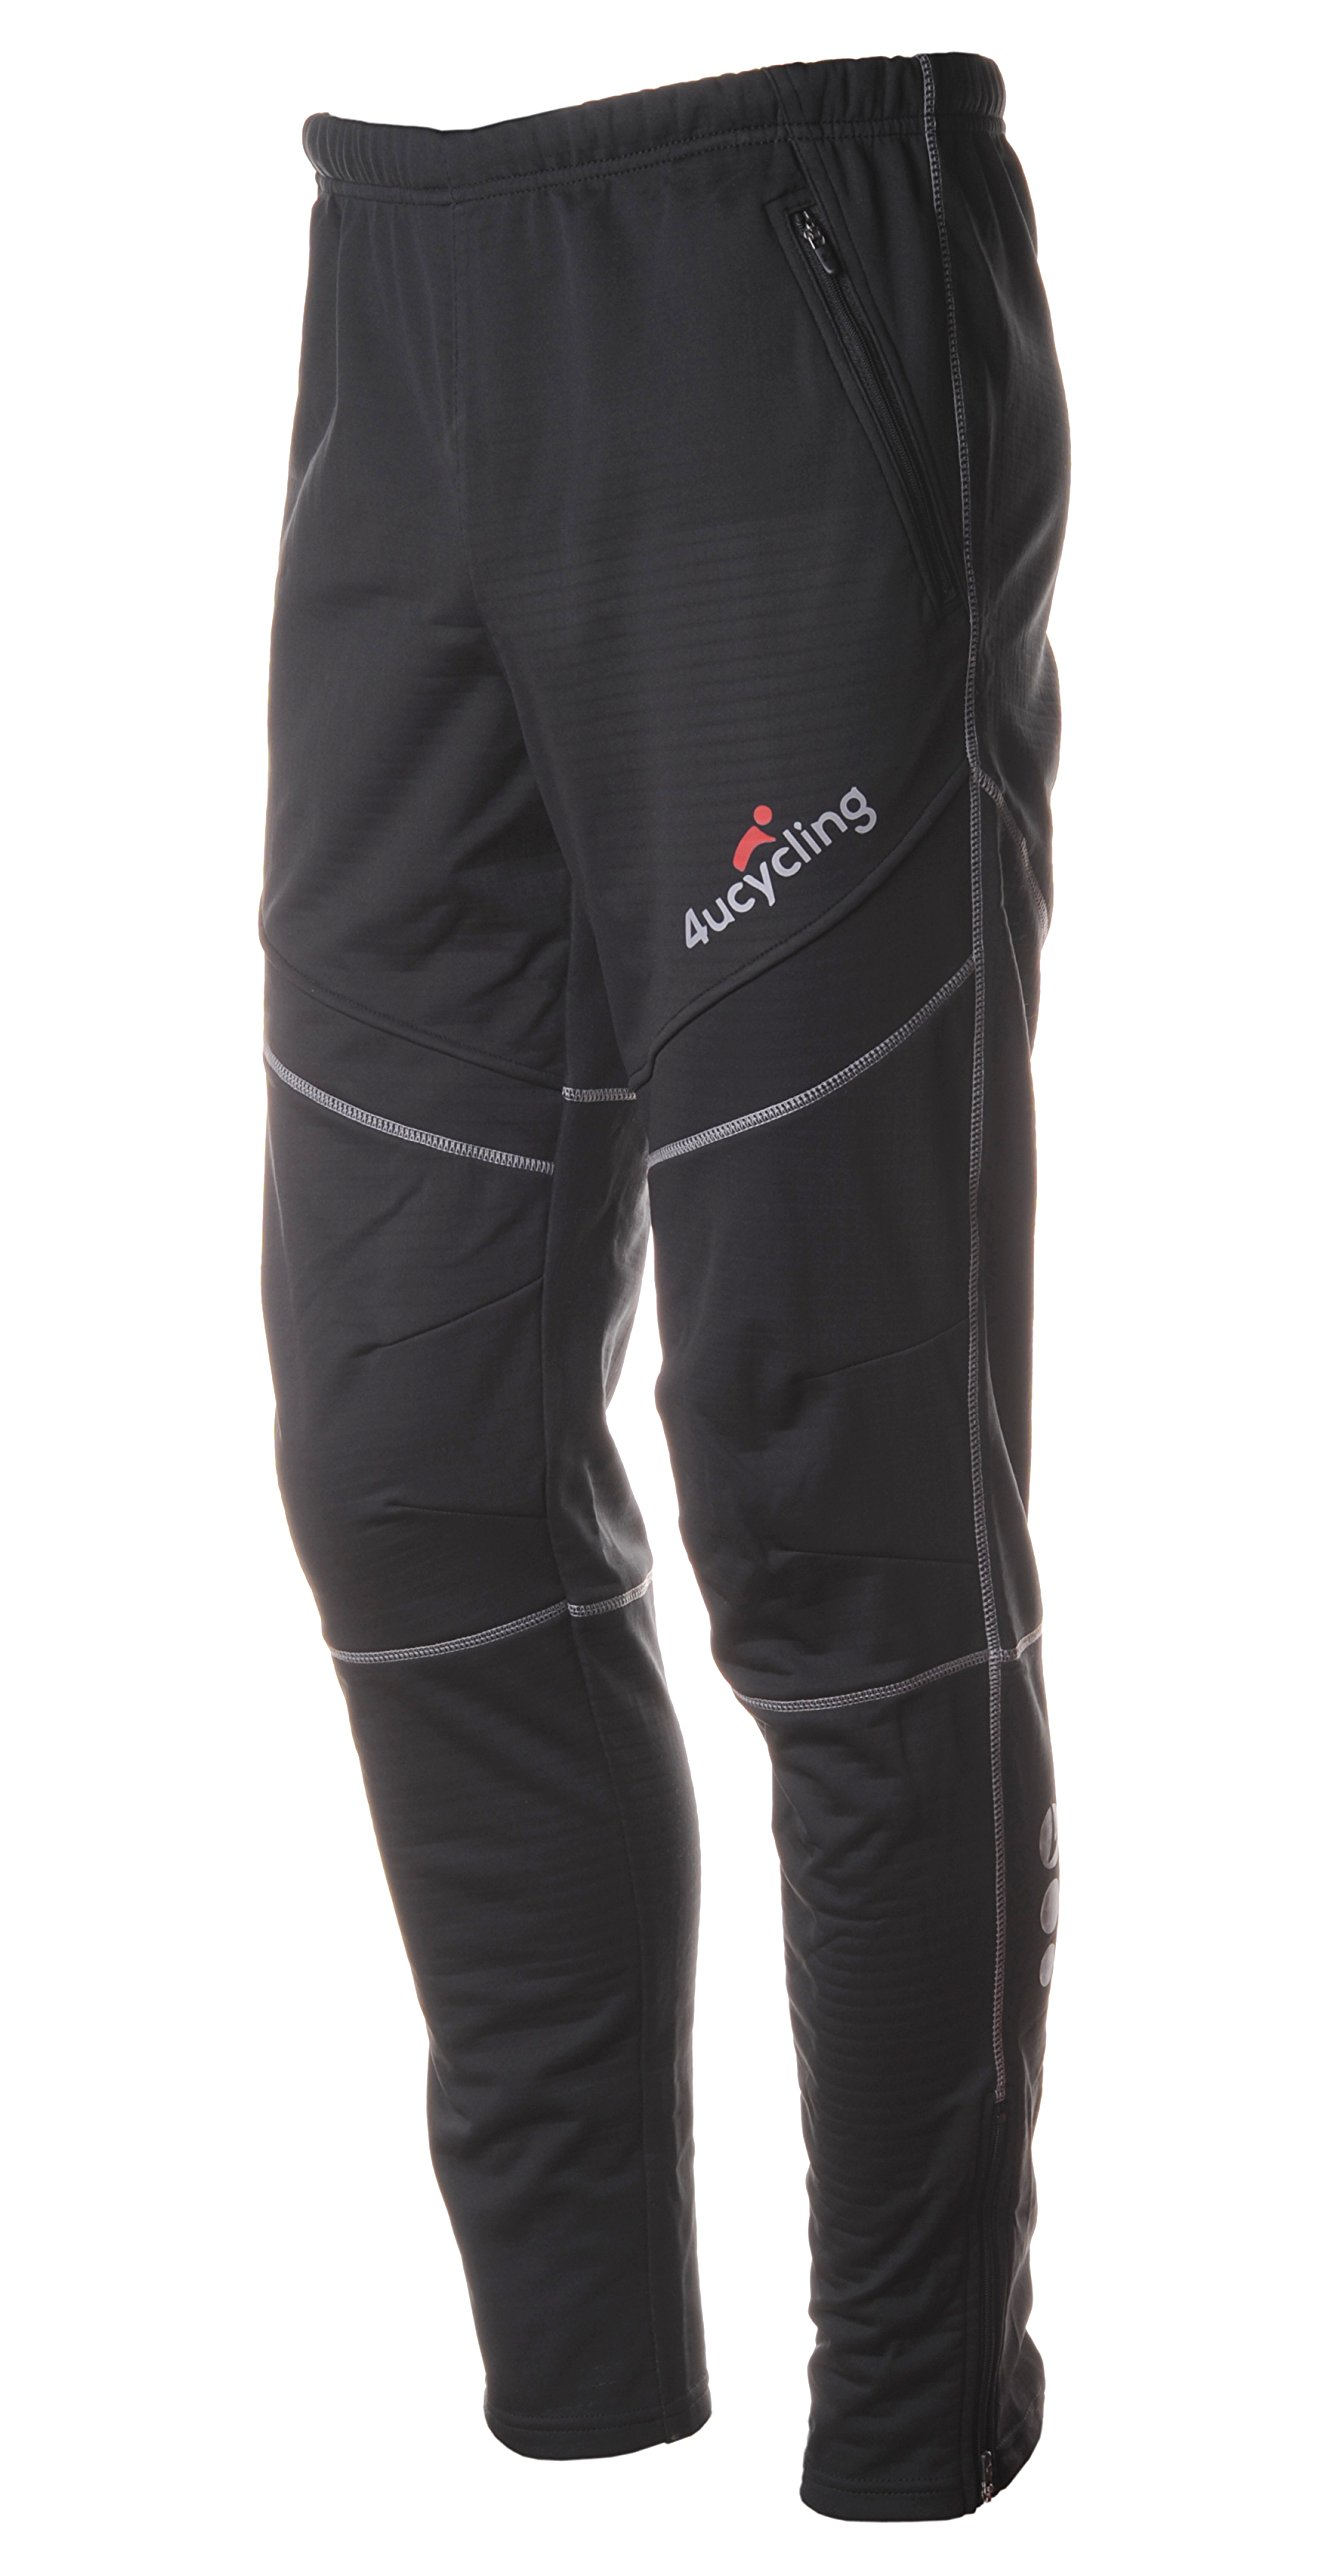 4ucycling Windproof Athletic Pants for Outdoor and Multi Sports product image